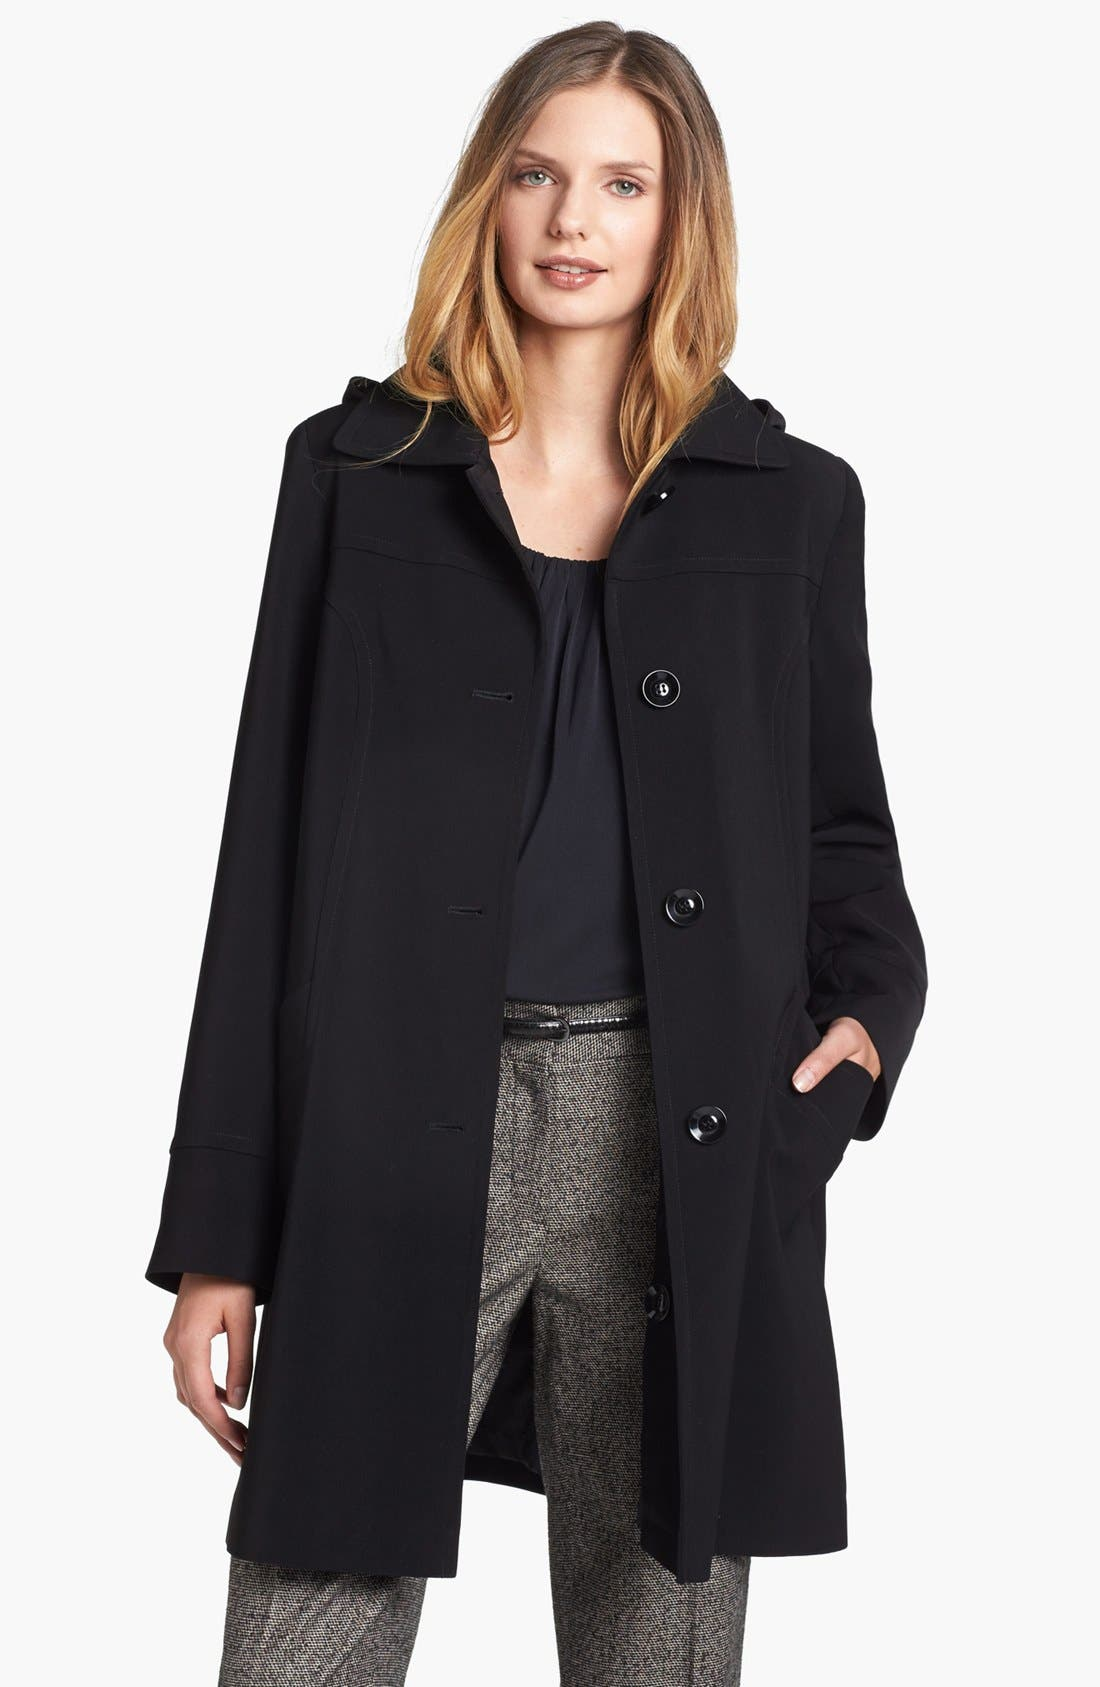 Main Image - Gallery 'Nepage' Coat with Detachable Hood & Liner (Petite) (Online Only)